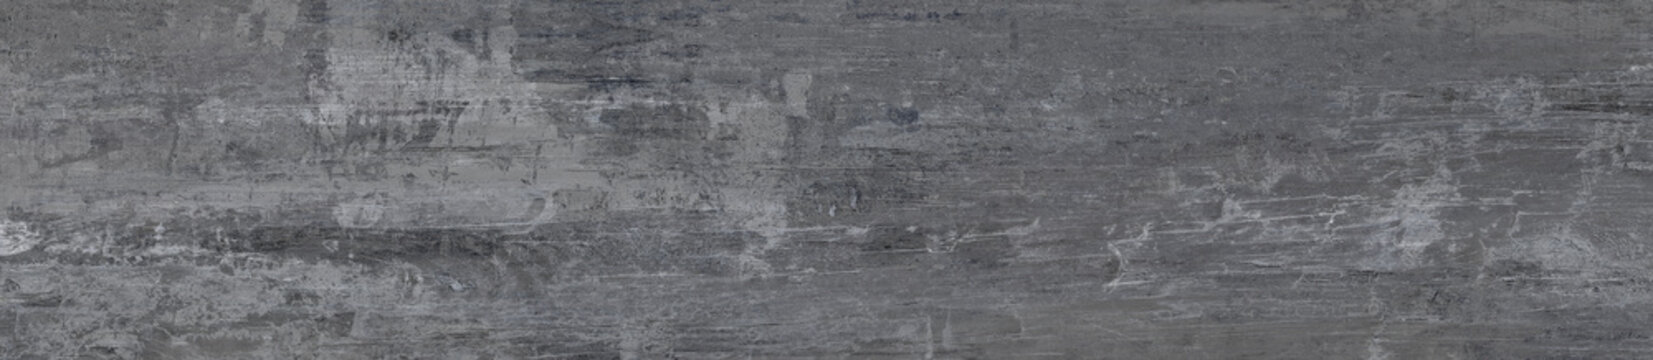 Wood texture for design and decoration, natural wood